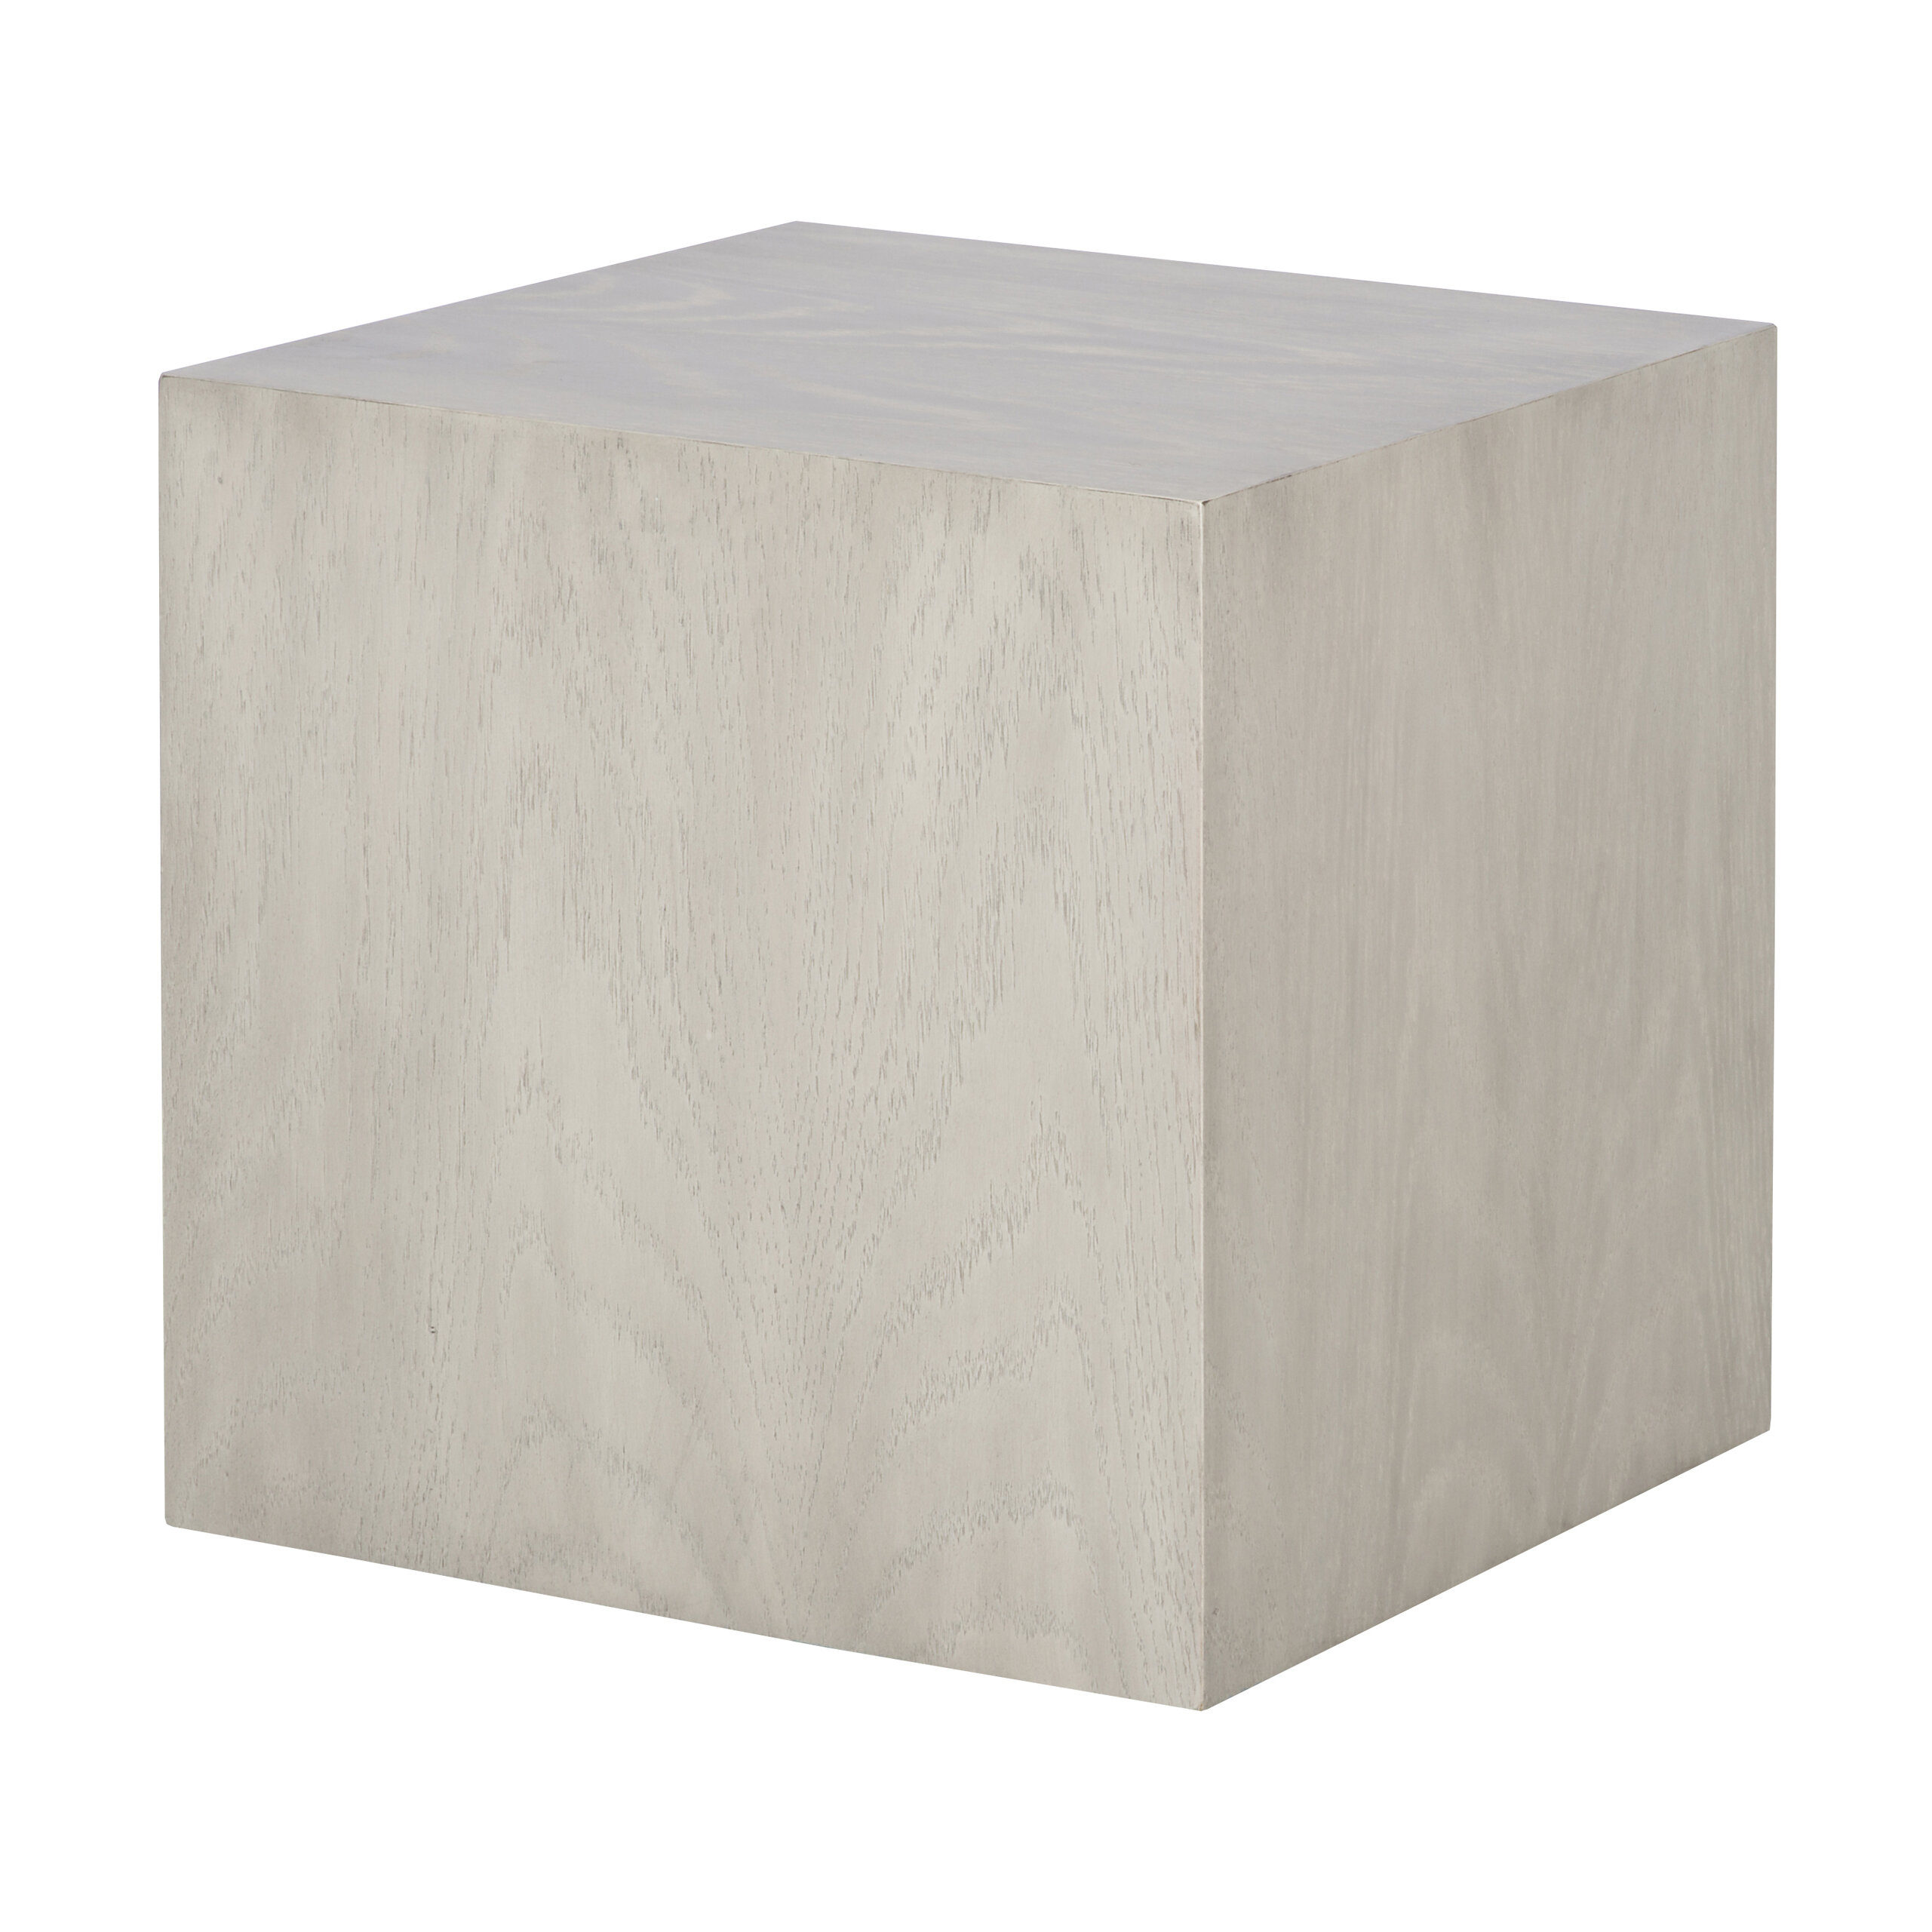 Resource Decor Kelly Hoppen Block End Table Perigold